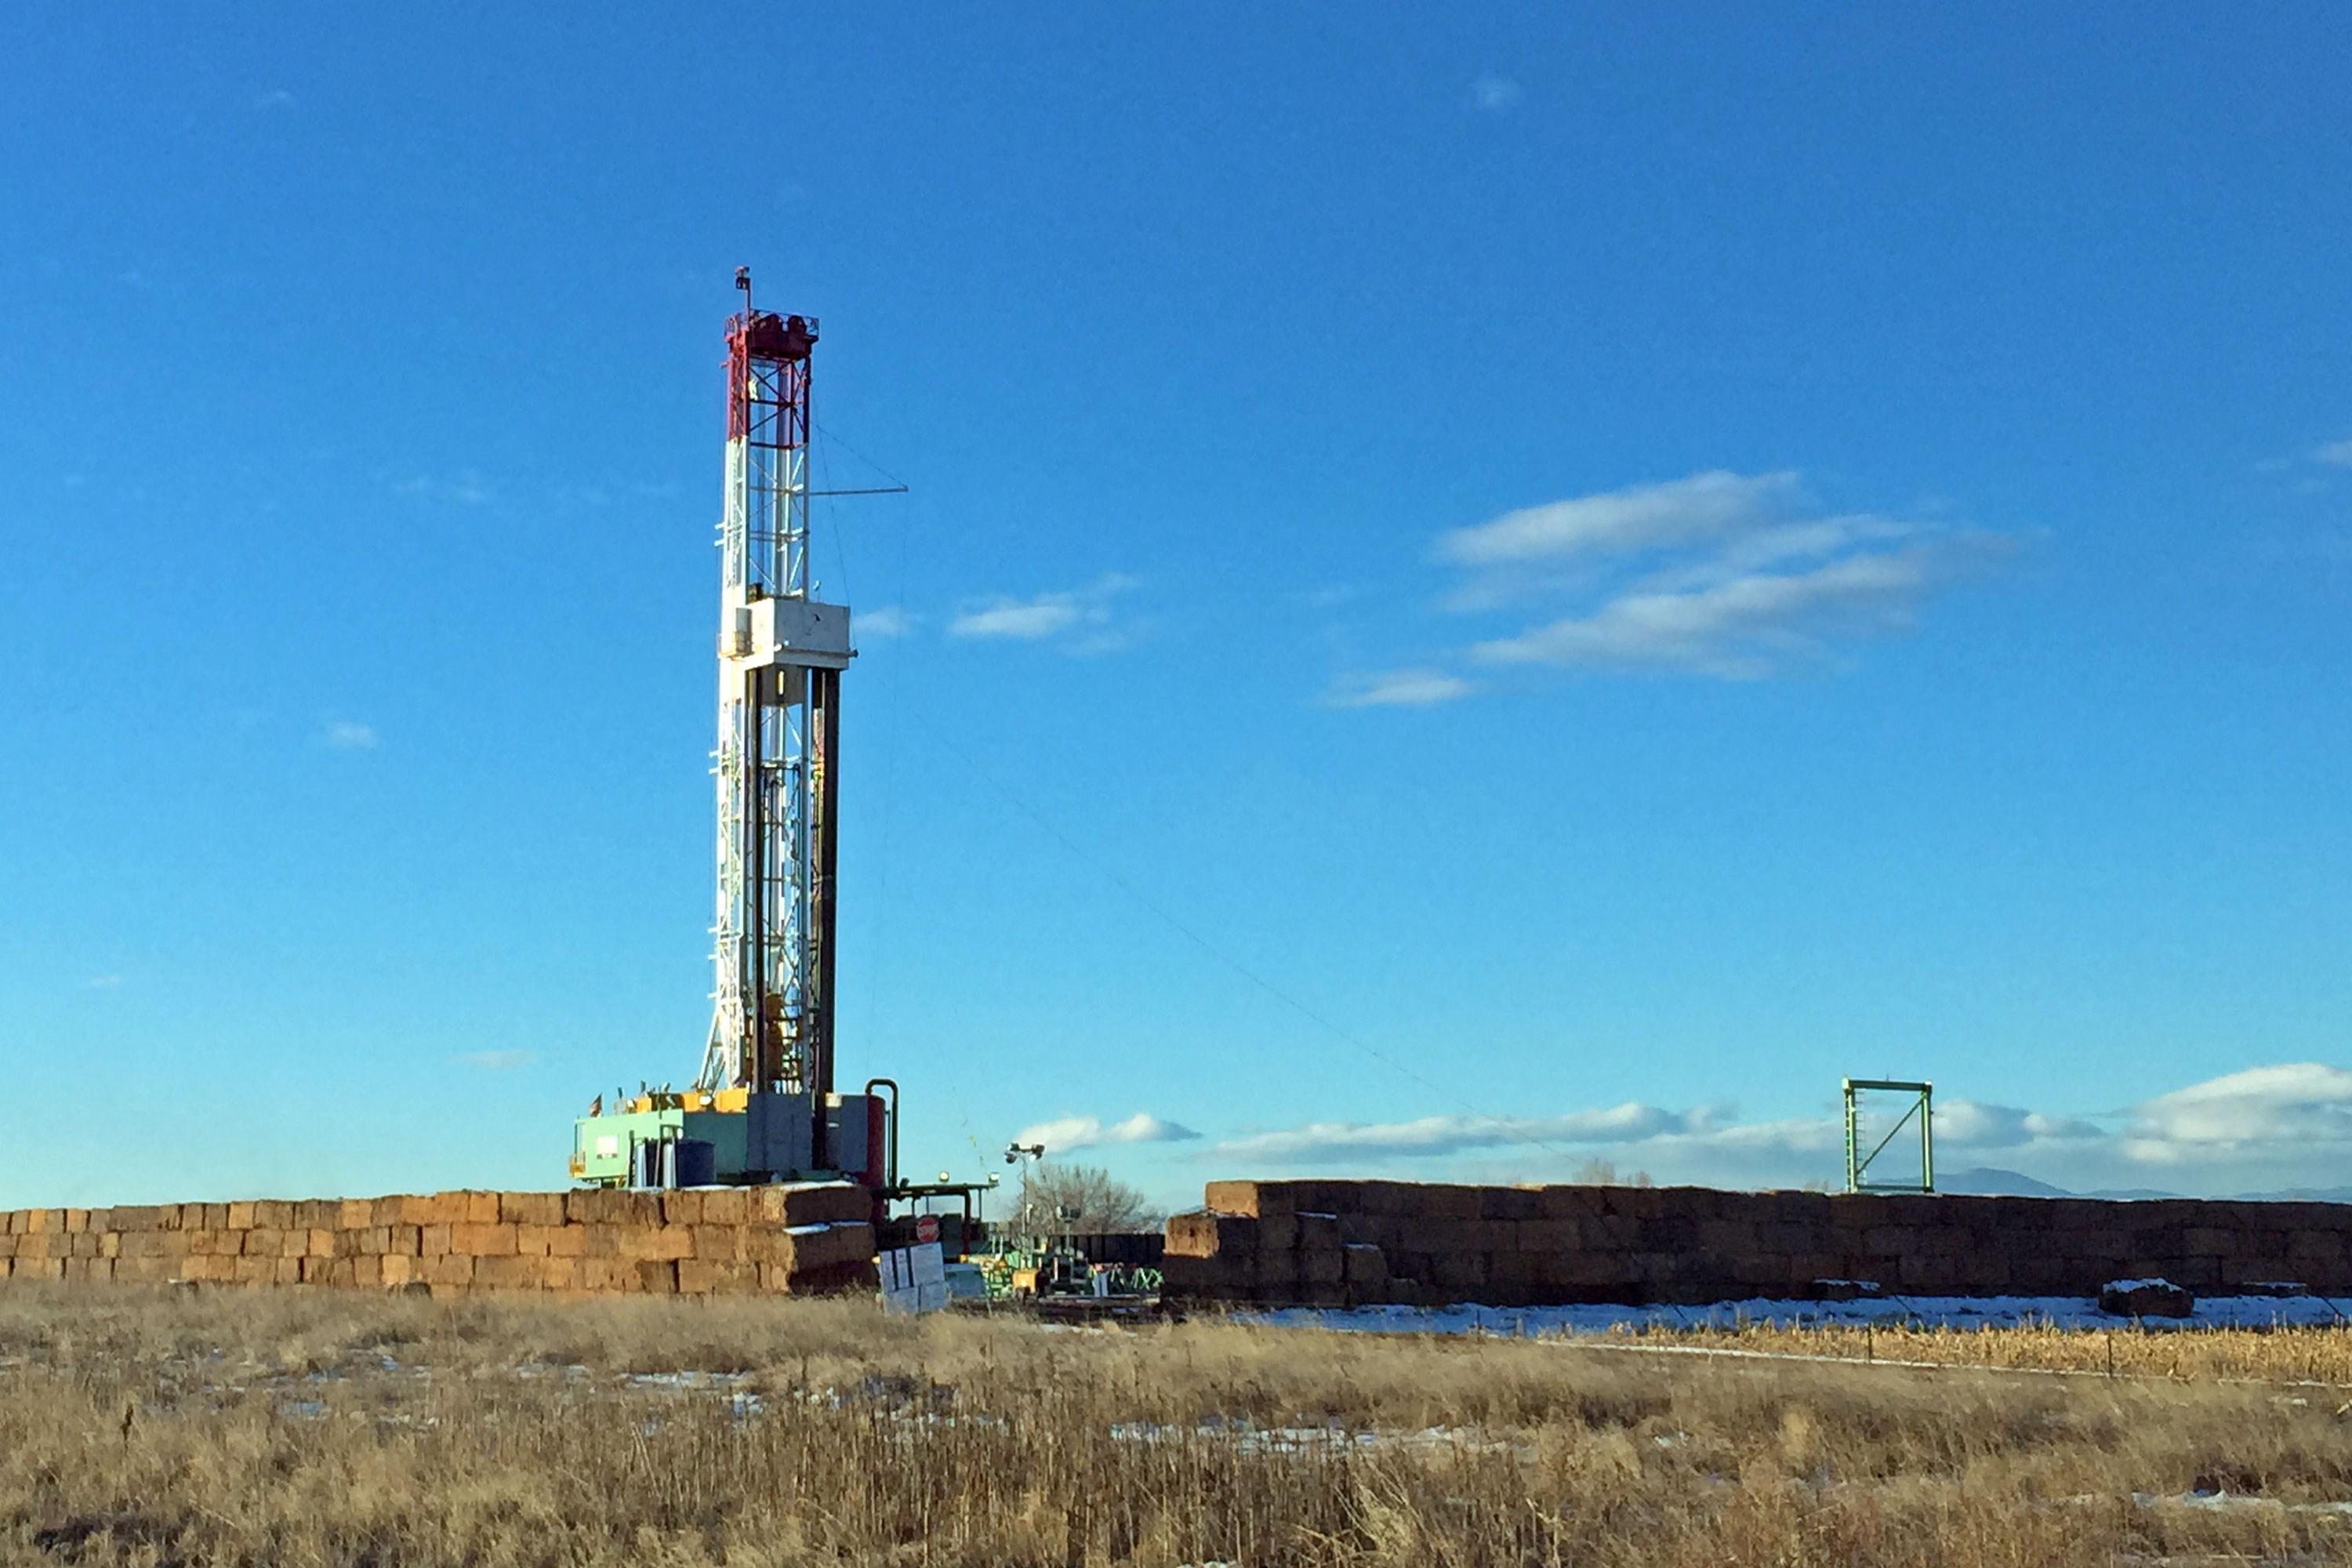 Photo: Drill Rig Near Longmont - GHood